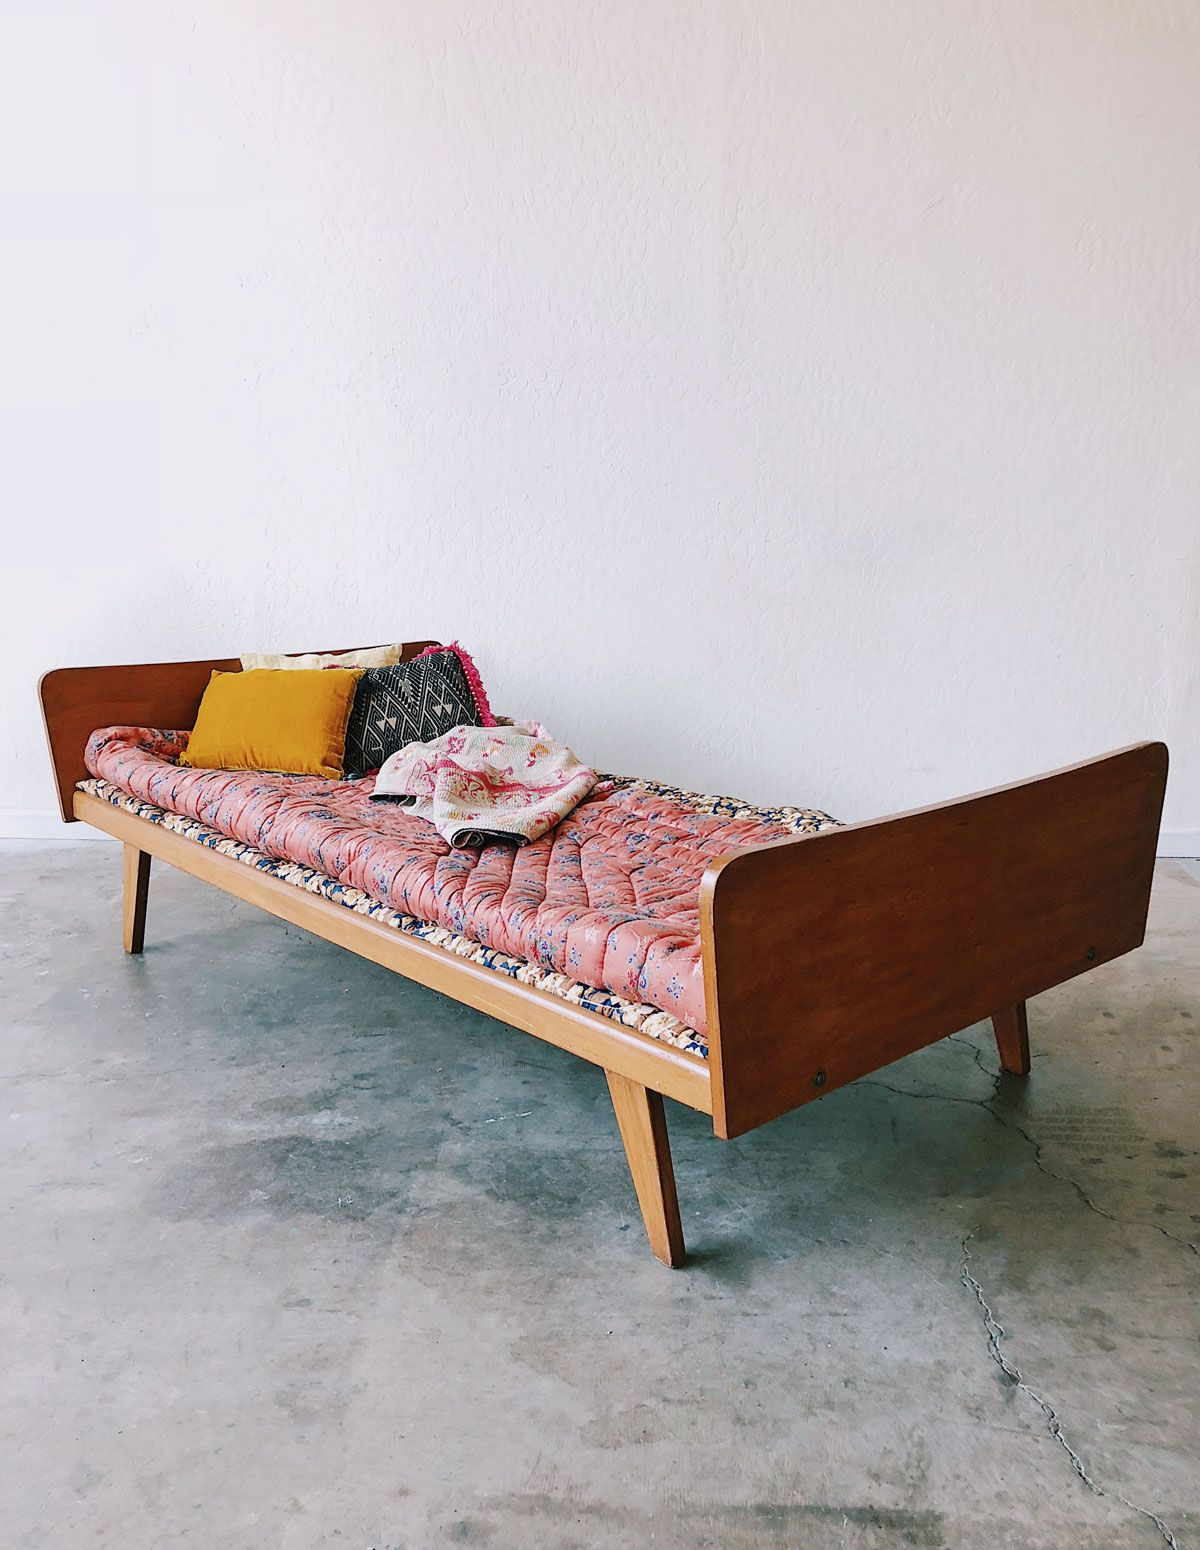 Vintage Scandinavian Daybed / available at Super Marché